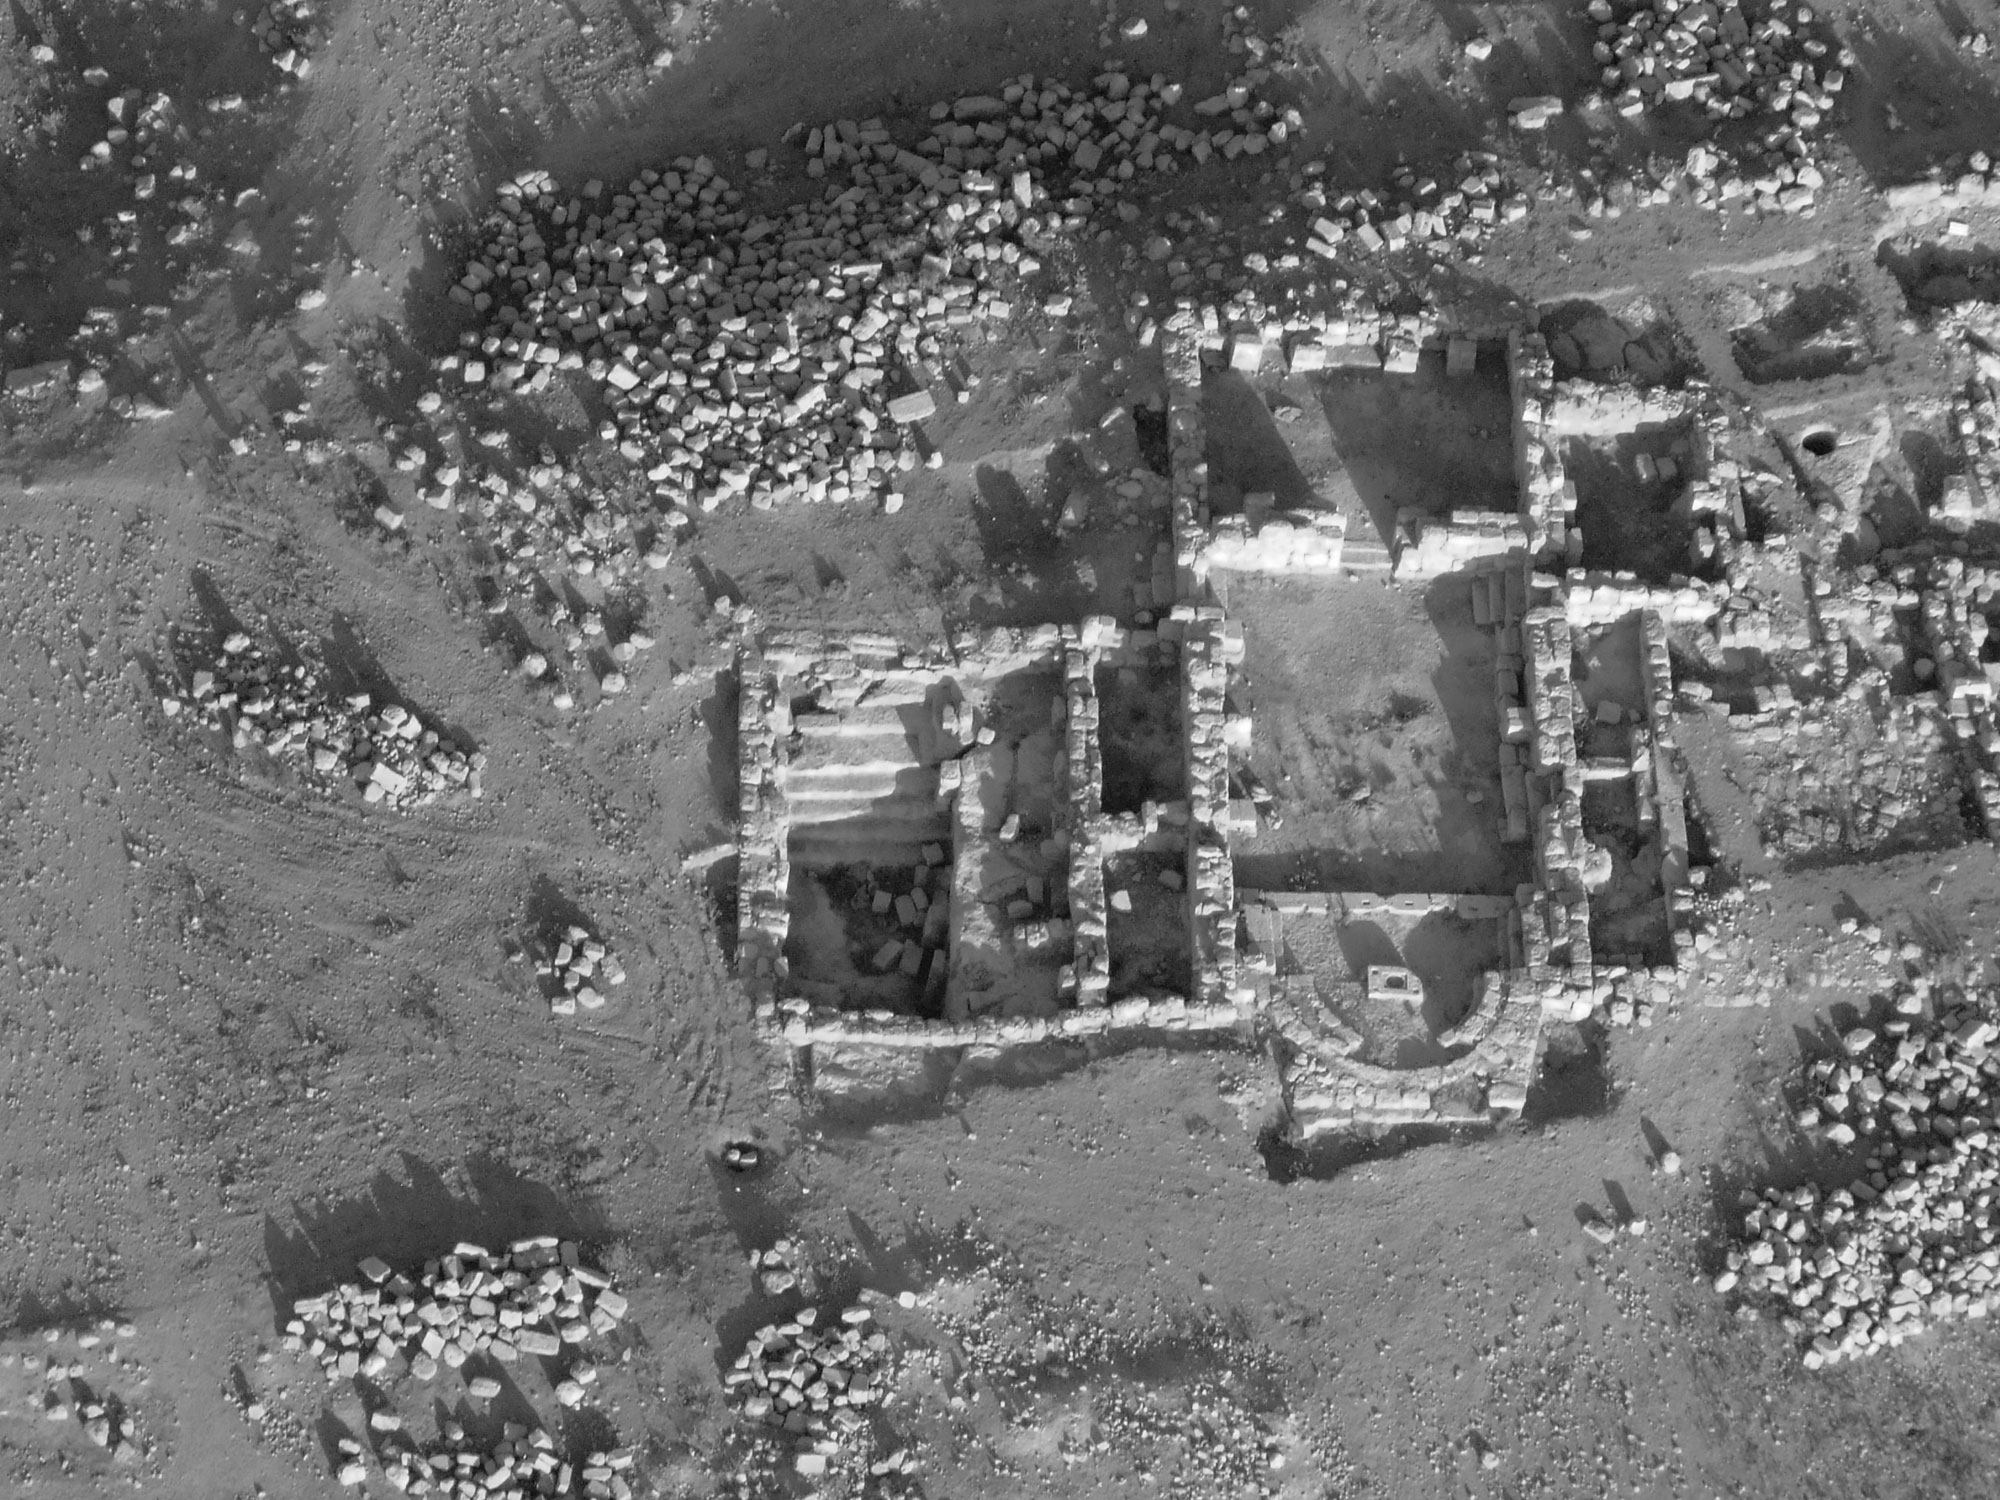 Low level aerial images and land survey